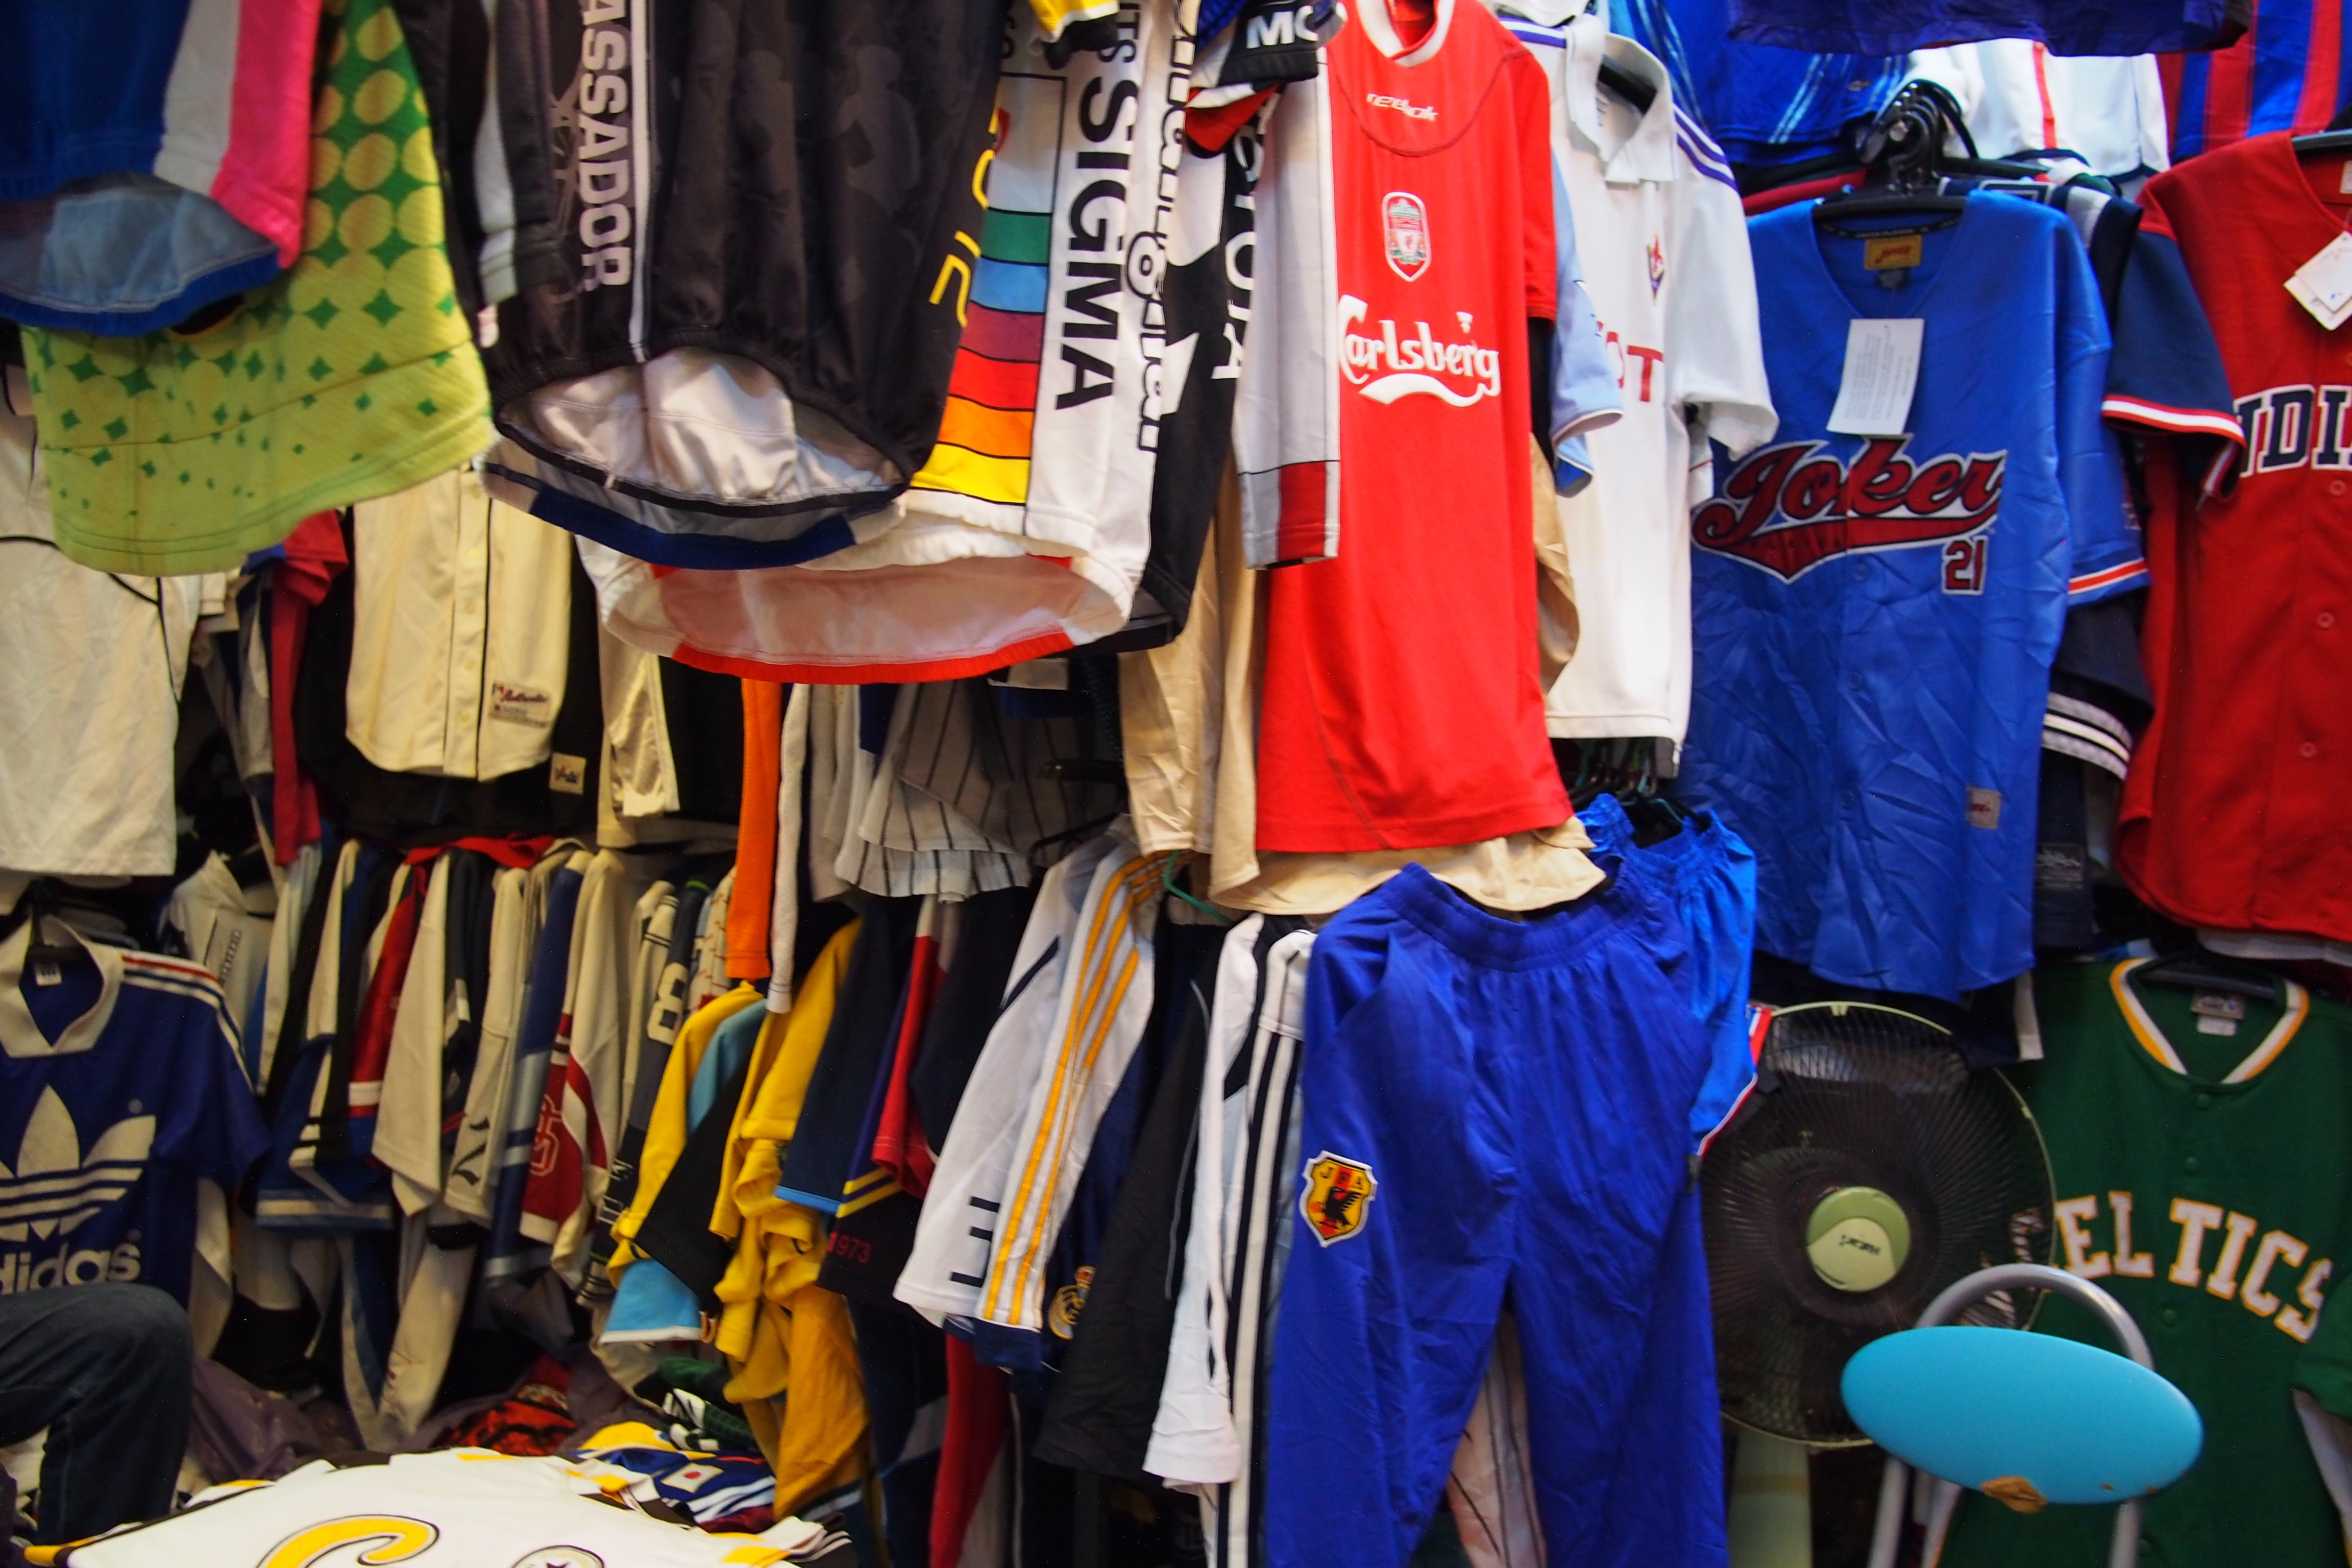 Used sports clothing in Chatuchak